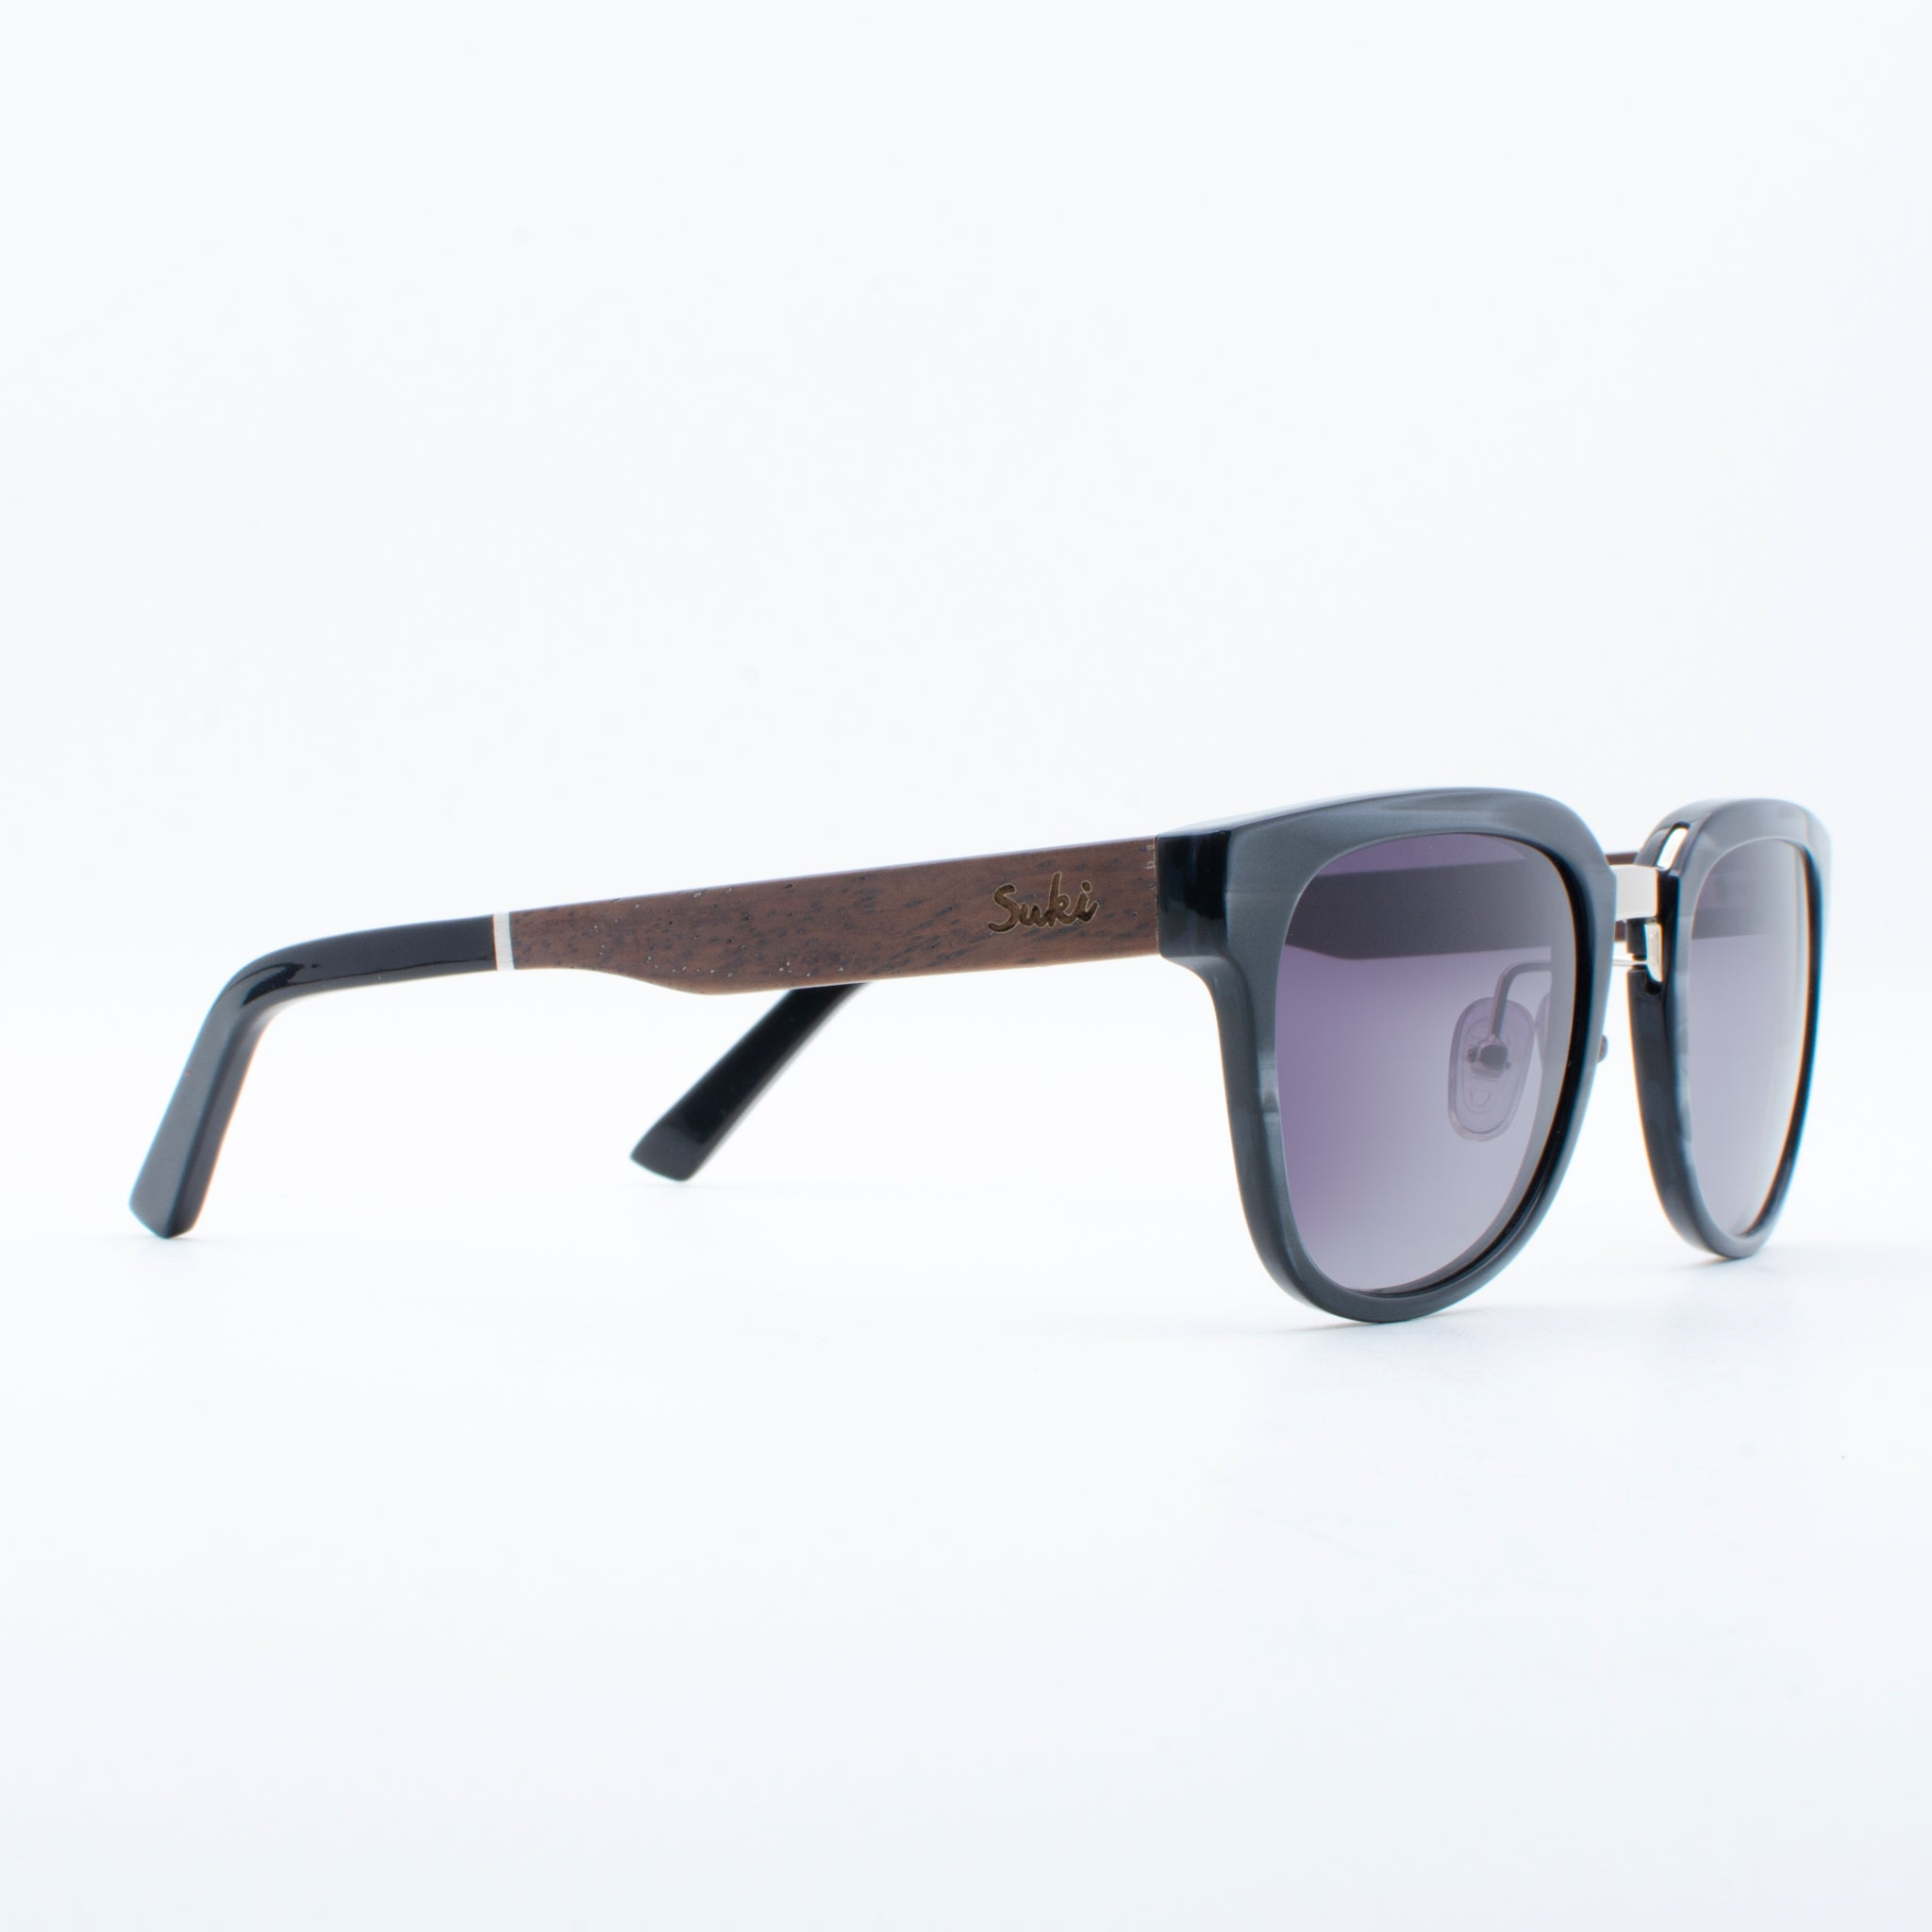 WOODEN SUNGLASSES YOGA GREY SUKI